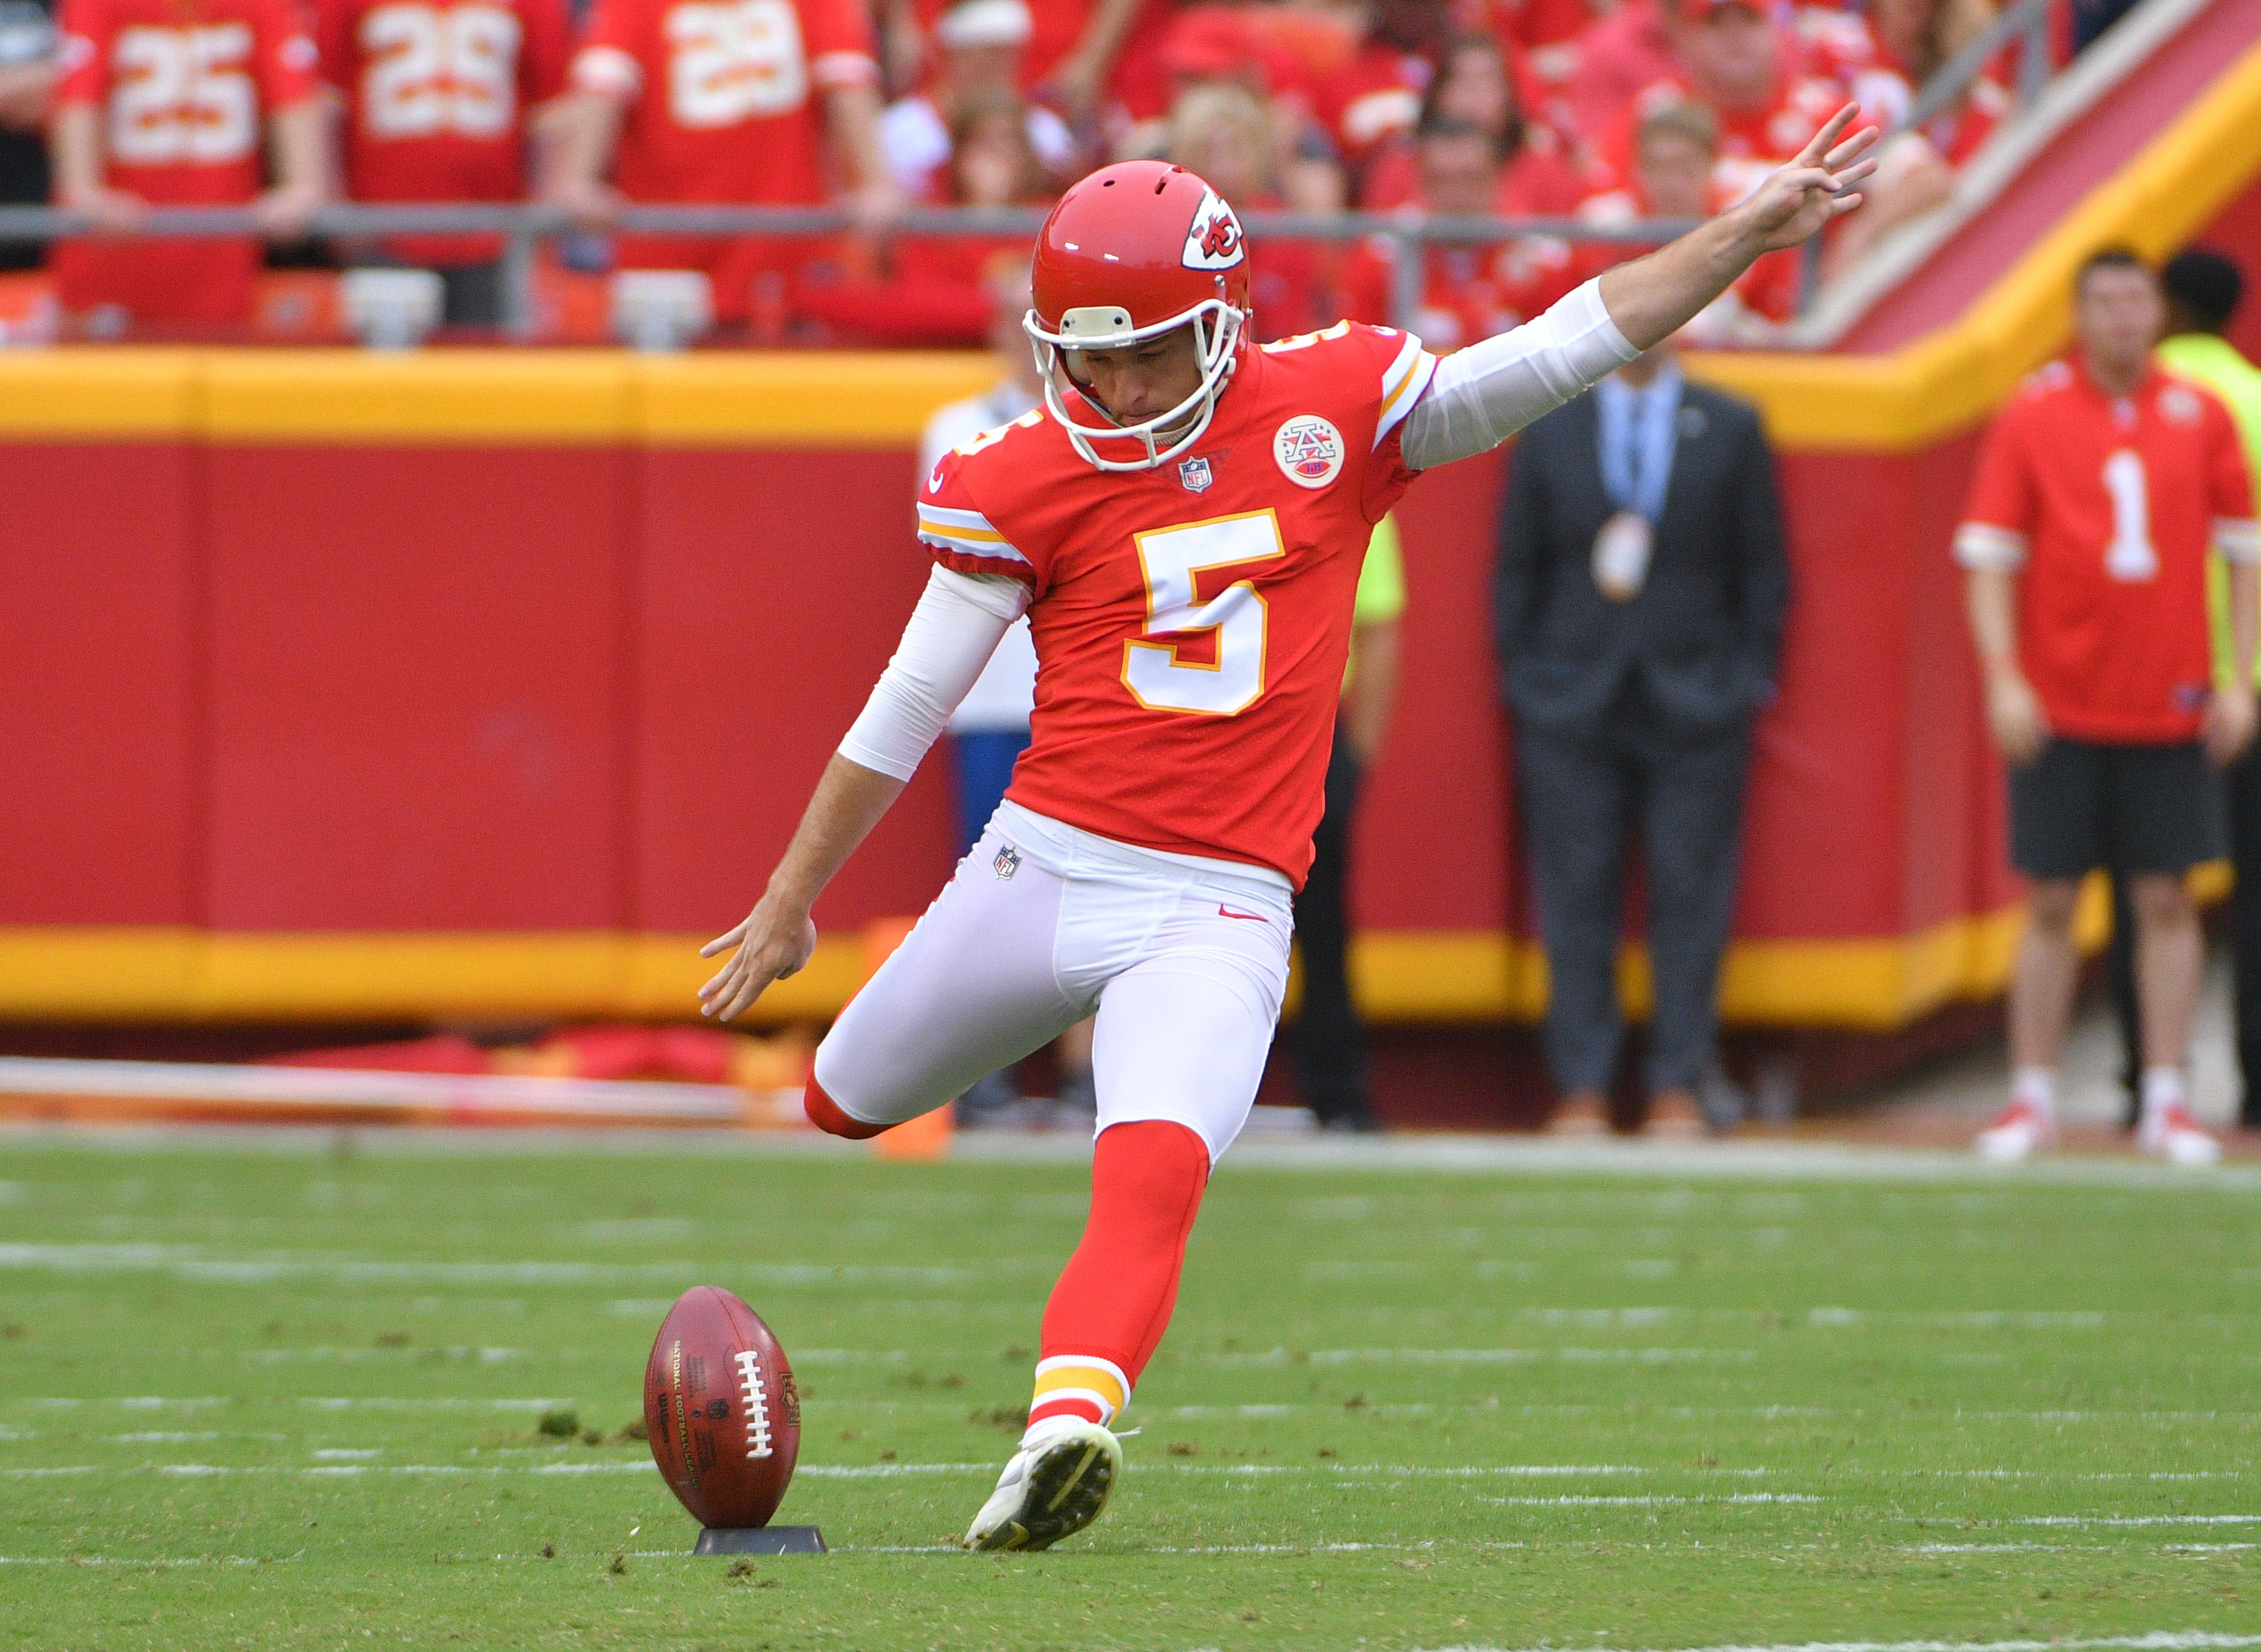 Jets release Cairo Santos: What does it mean?